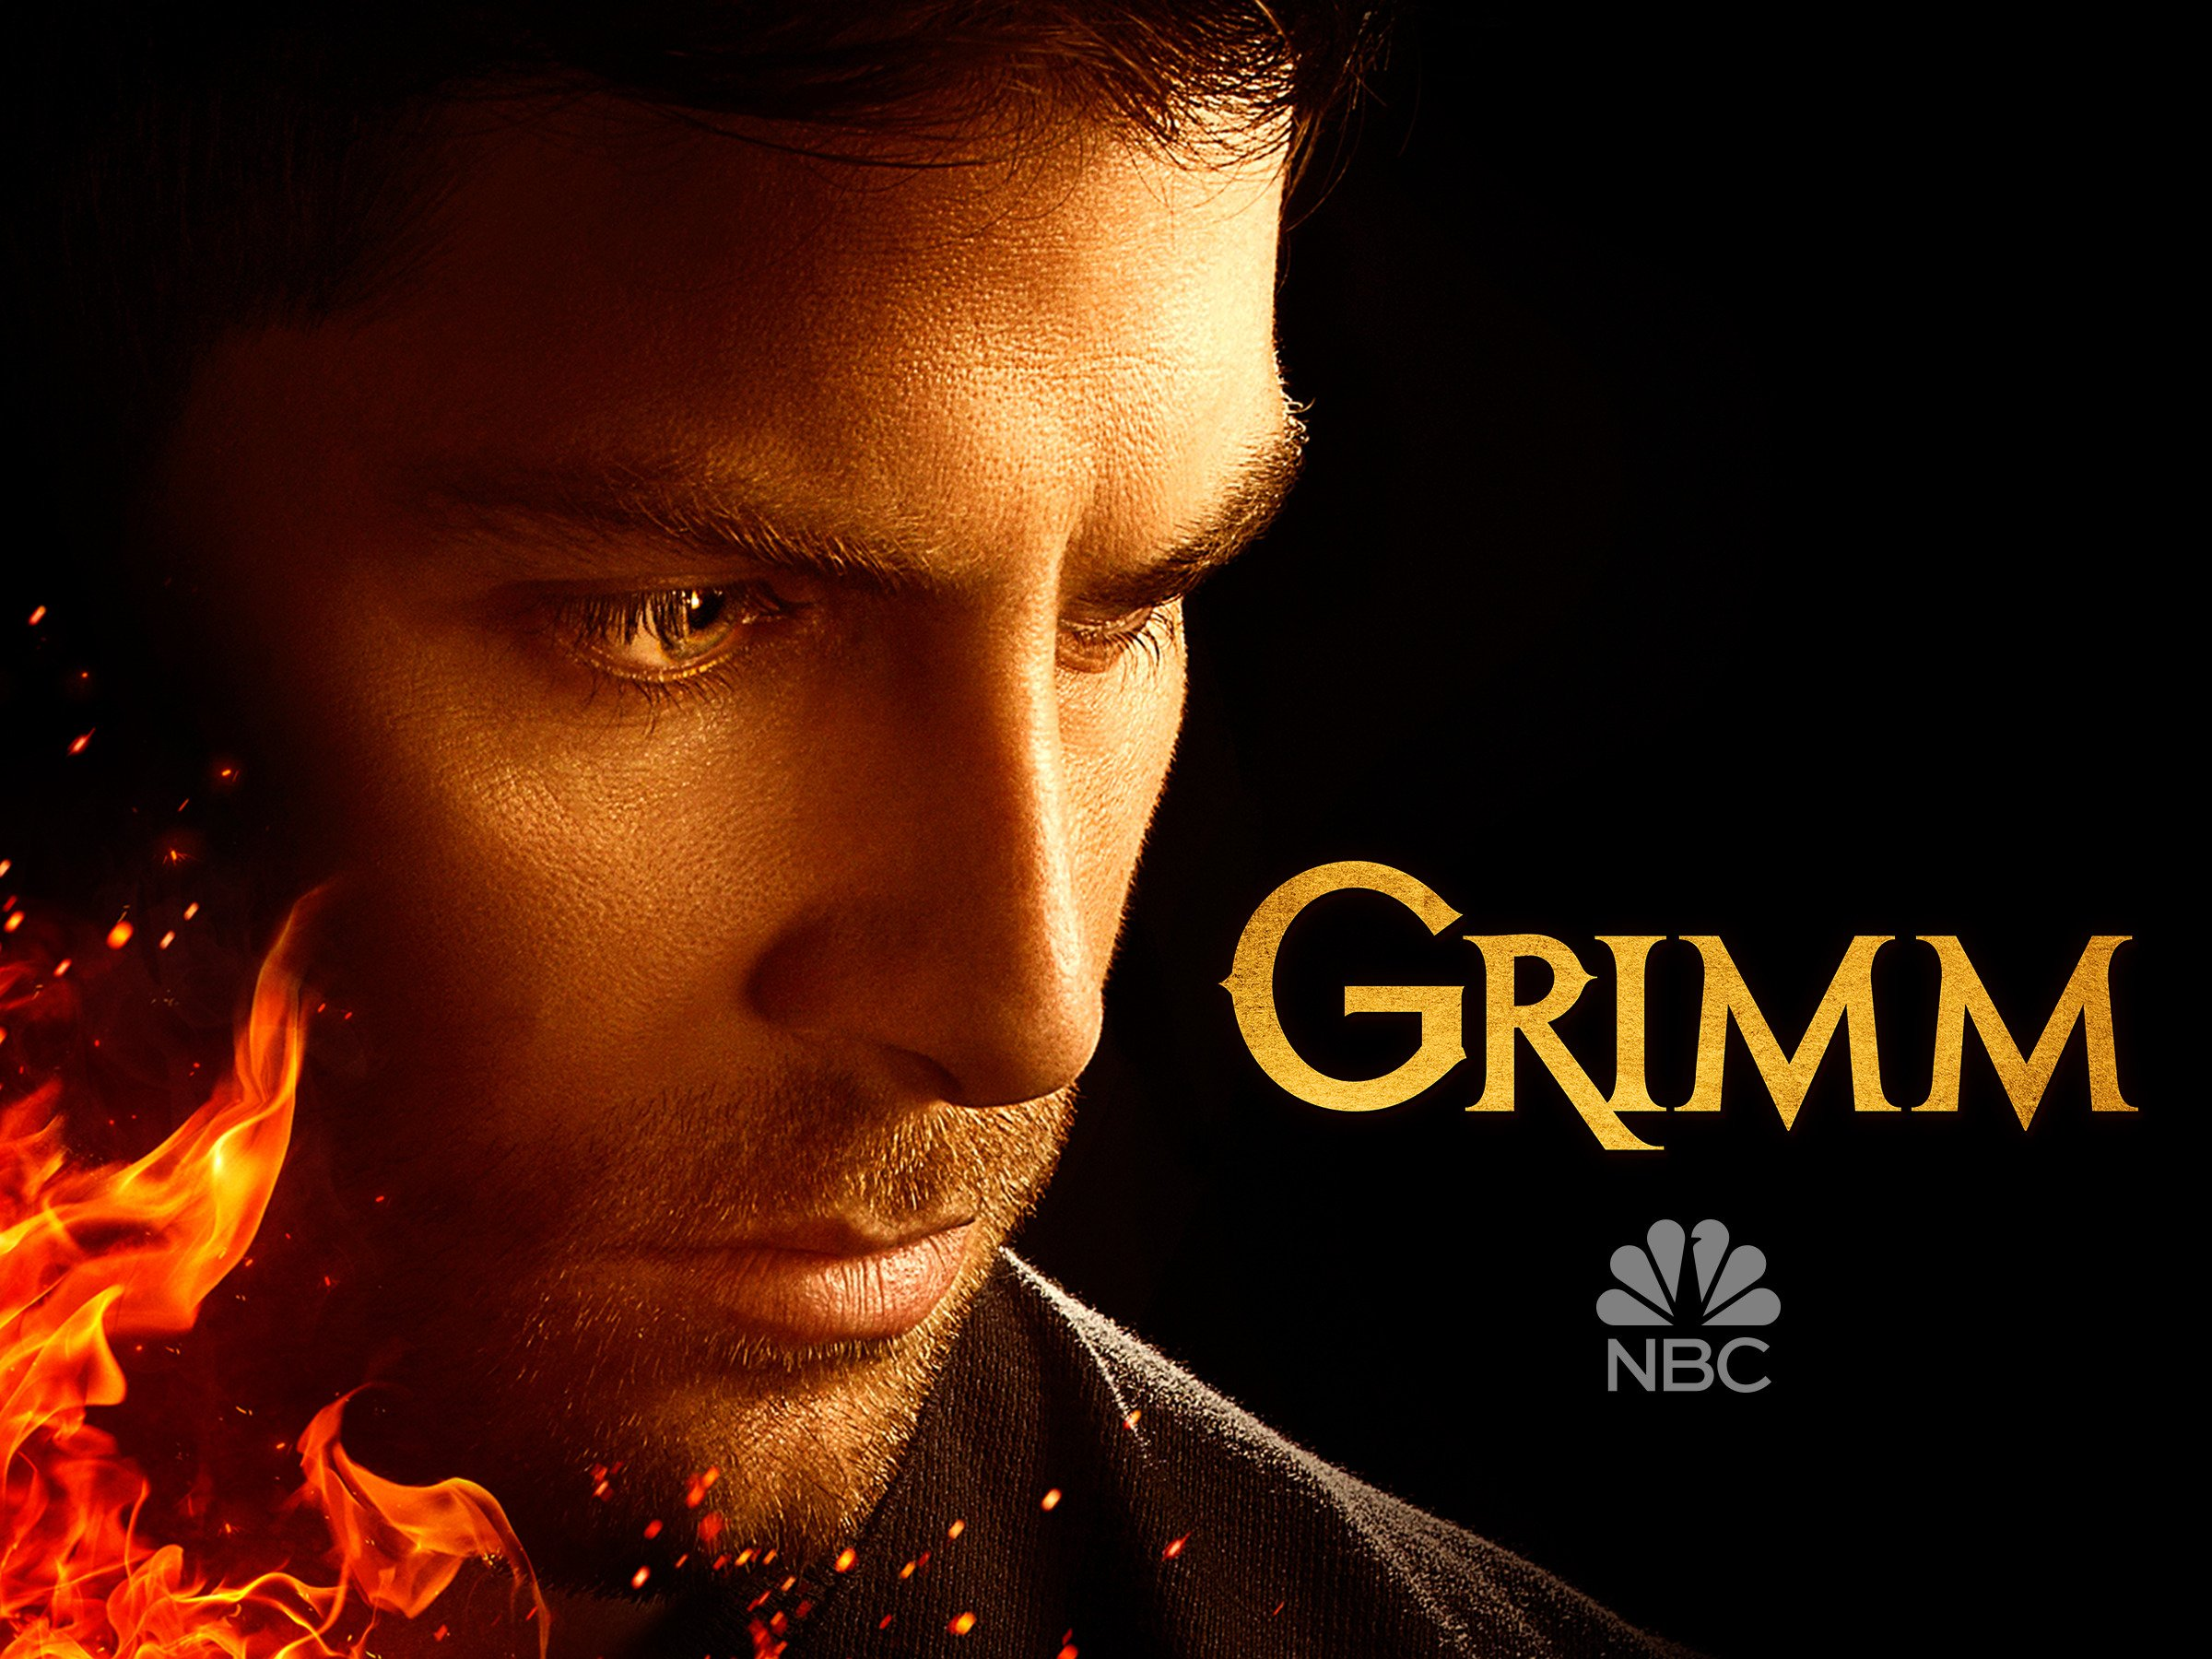 amazon com grimm season 5 david giuntoli silas weir mitchell